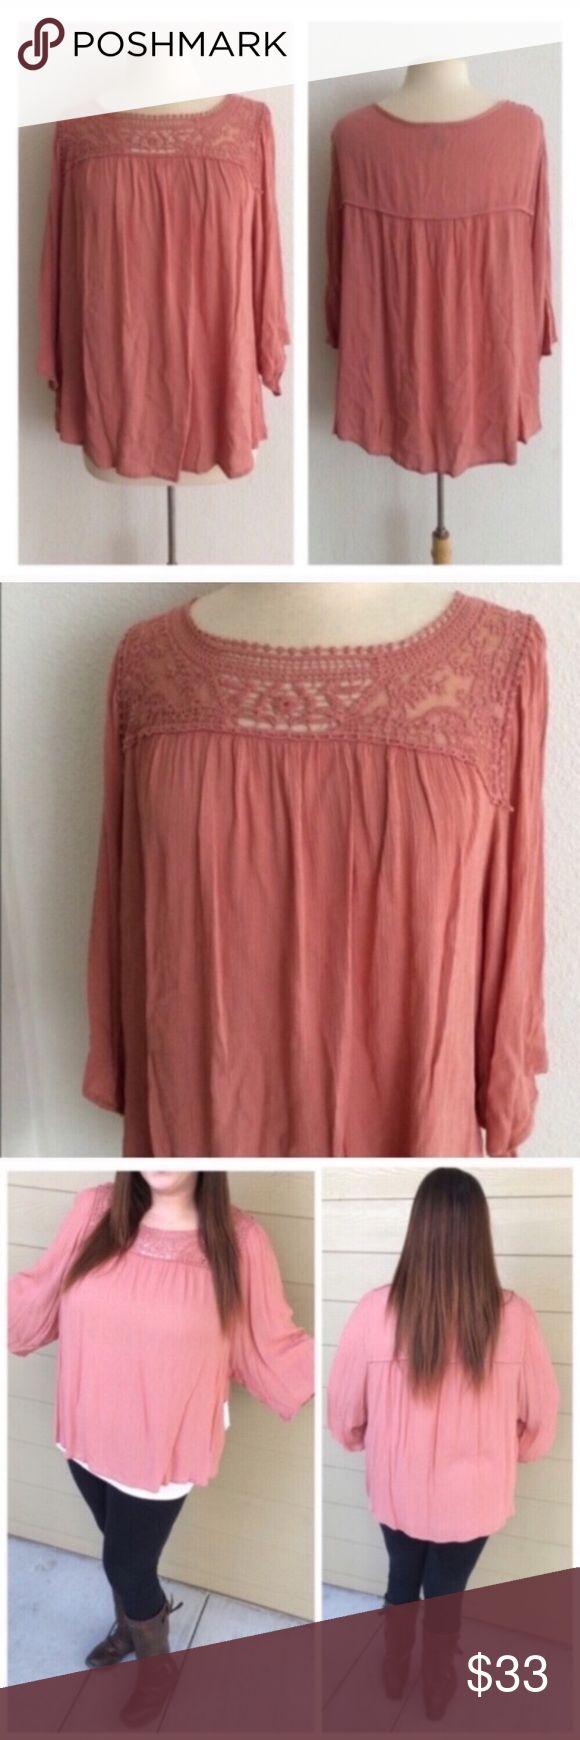 """(Plus) Pink flowy tunic Lace blouse. 100% rayon. Very flowy! Dolman style sleeves. Lightweight and semi sheer. Slightly shorter on the sides. Model is a 2x/ 16 and wearing size 2x.  1x: L 29"""" • B 48"""" 2x: L 30"""" • B 50"""" *Please note: I ordered these from my wholesale vendor, but they are a brand from Sears/ Kmart and have tags from the store ⭐️This item is brand new with tags 💲Price is firm unless bundled ✅Bundle offers Availability: 1x•2x • 1•1 Tops"""